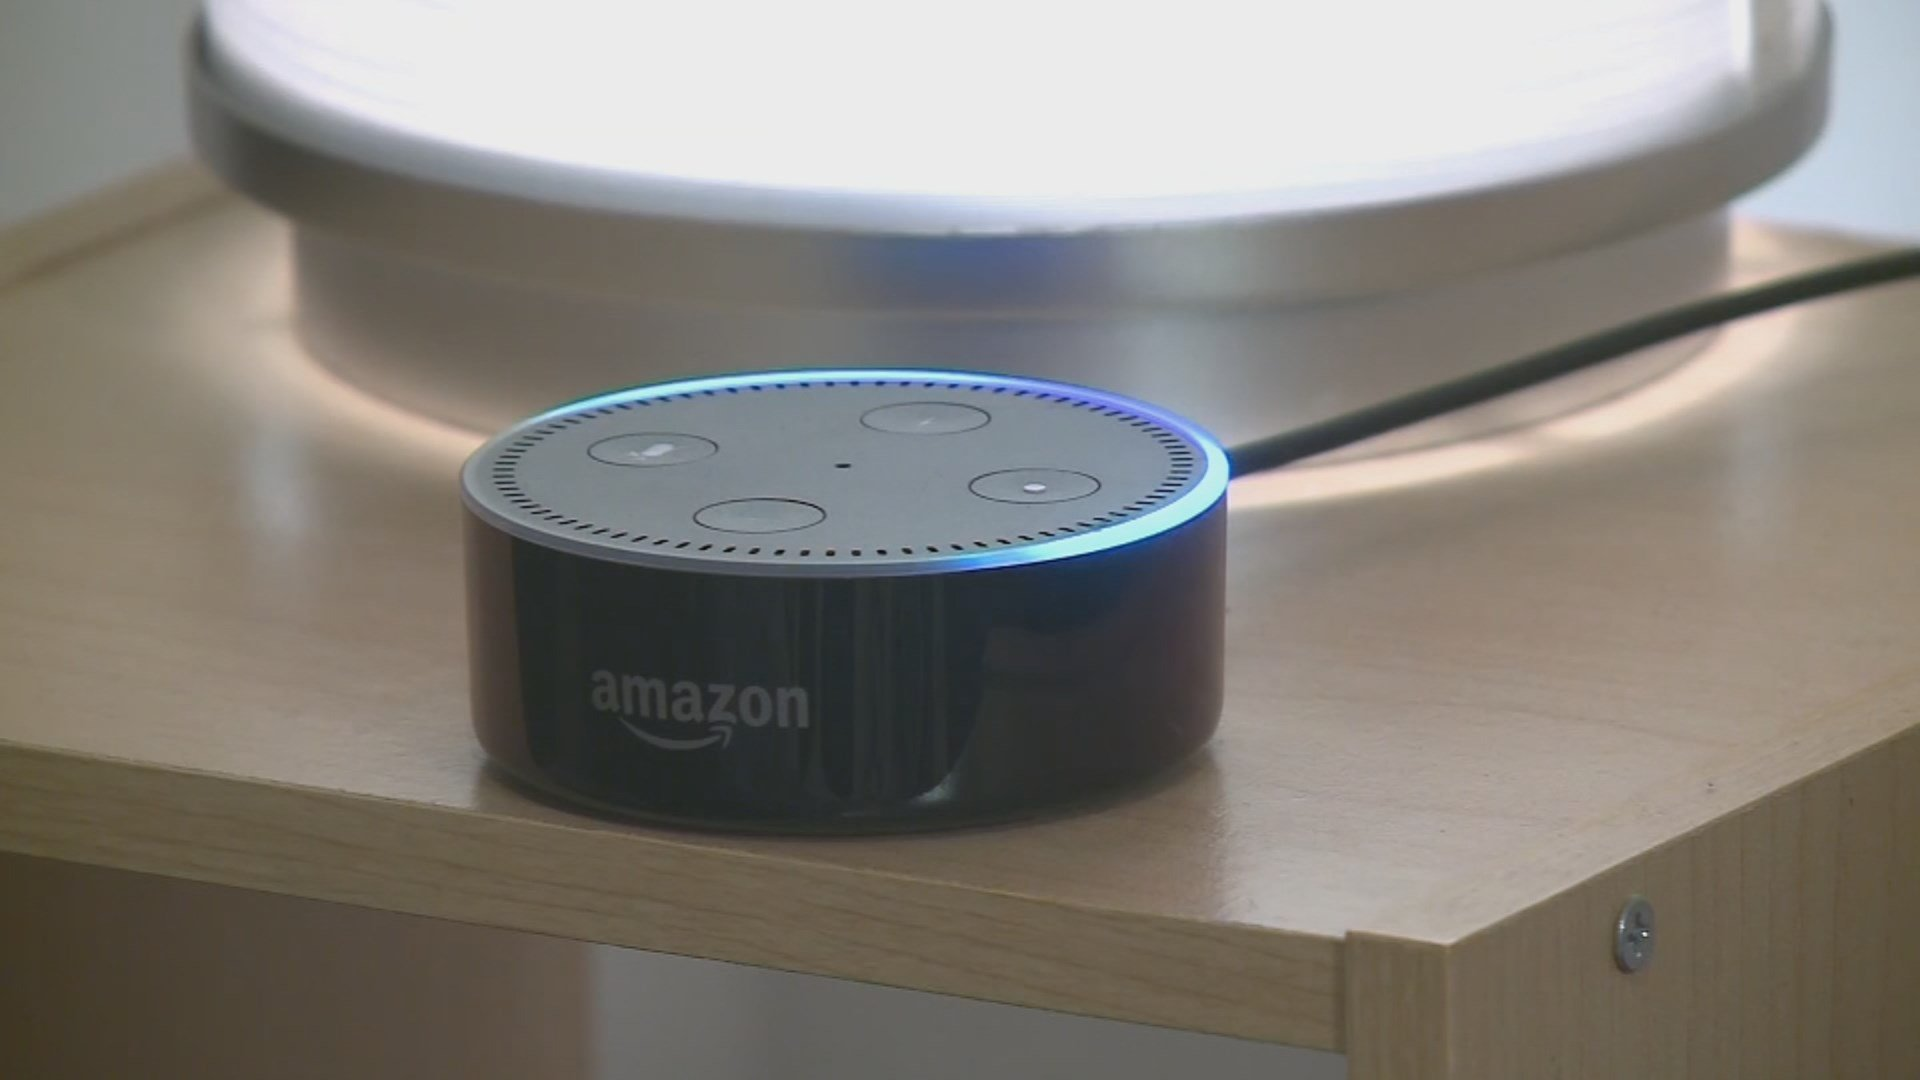 More than 40 million homes now have one of those hi-tech home assistant devices. It's listening all of the time, but do you really know what it's doing with that information? (KCTV5)